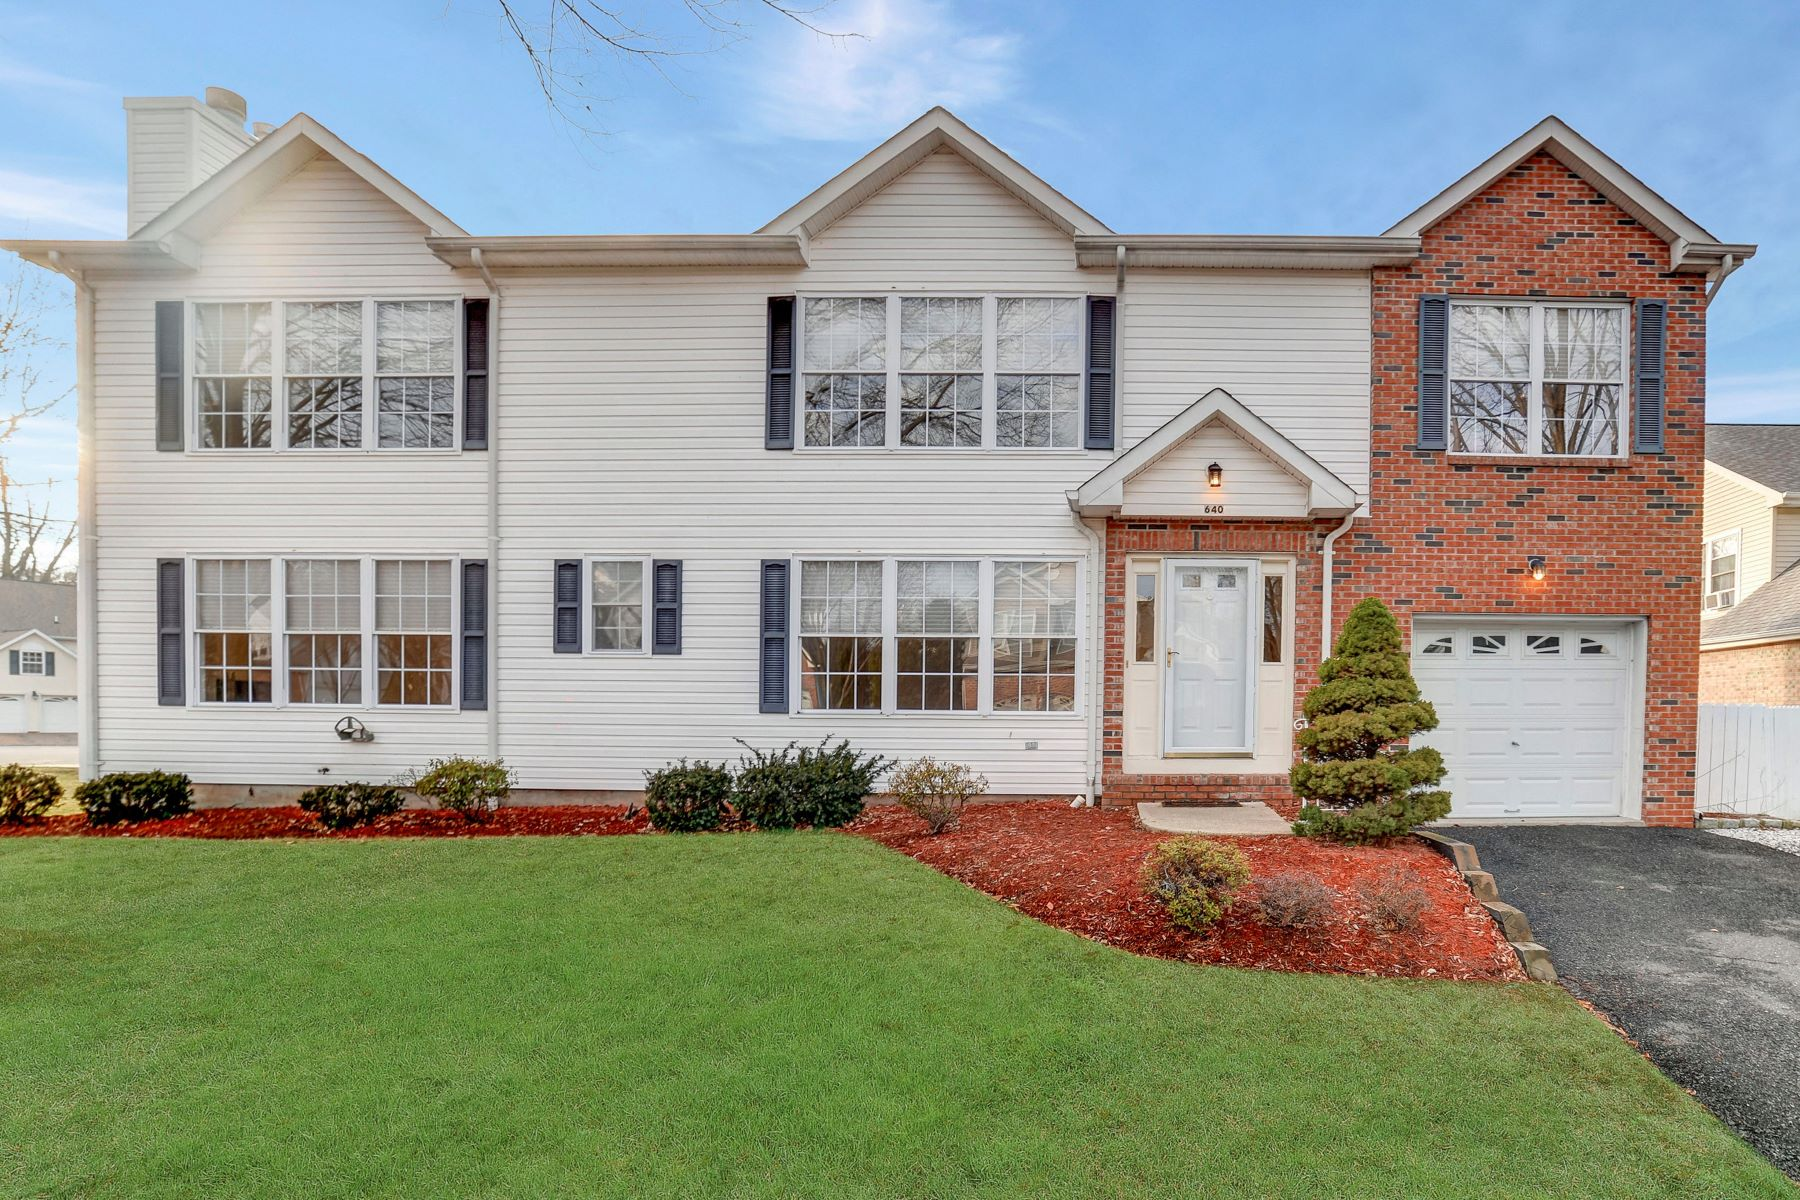 Single Family Home for Sale at Spacious Colonial on Cul-De-Sac 640 Seagull Dr, Paramus, New Jersey 07652 United States